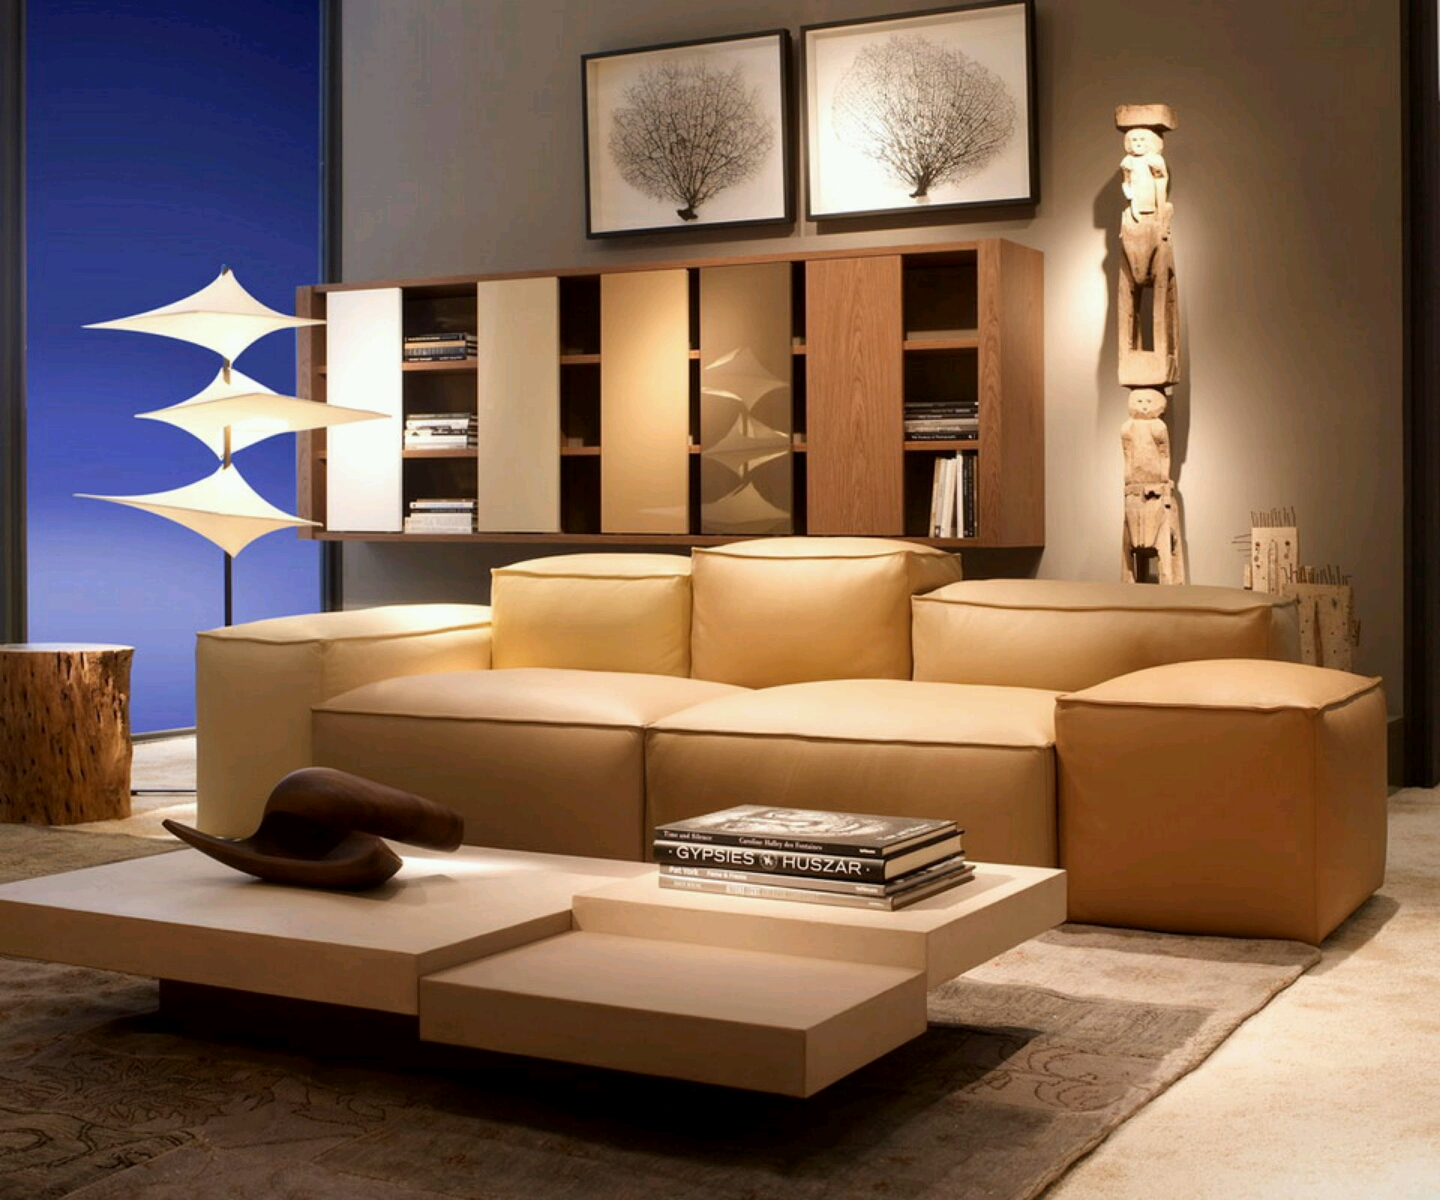 Designer Sofa Furniture Bb Italia Lunar Bed Beautiful Modern Designs An Interior Design